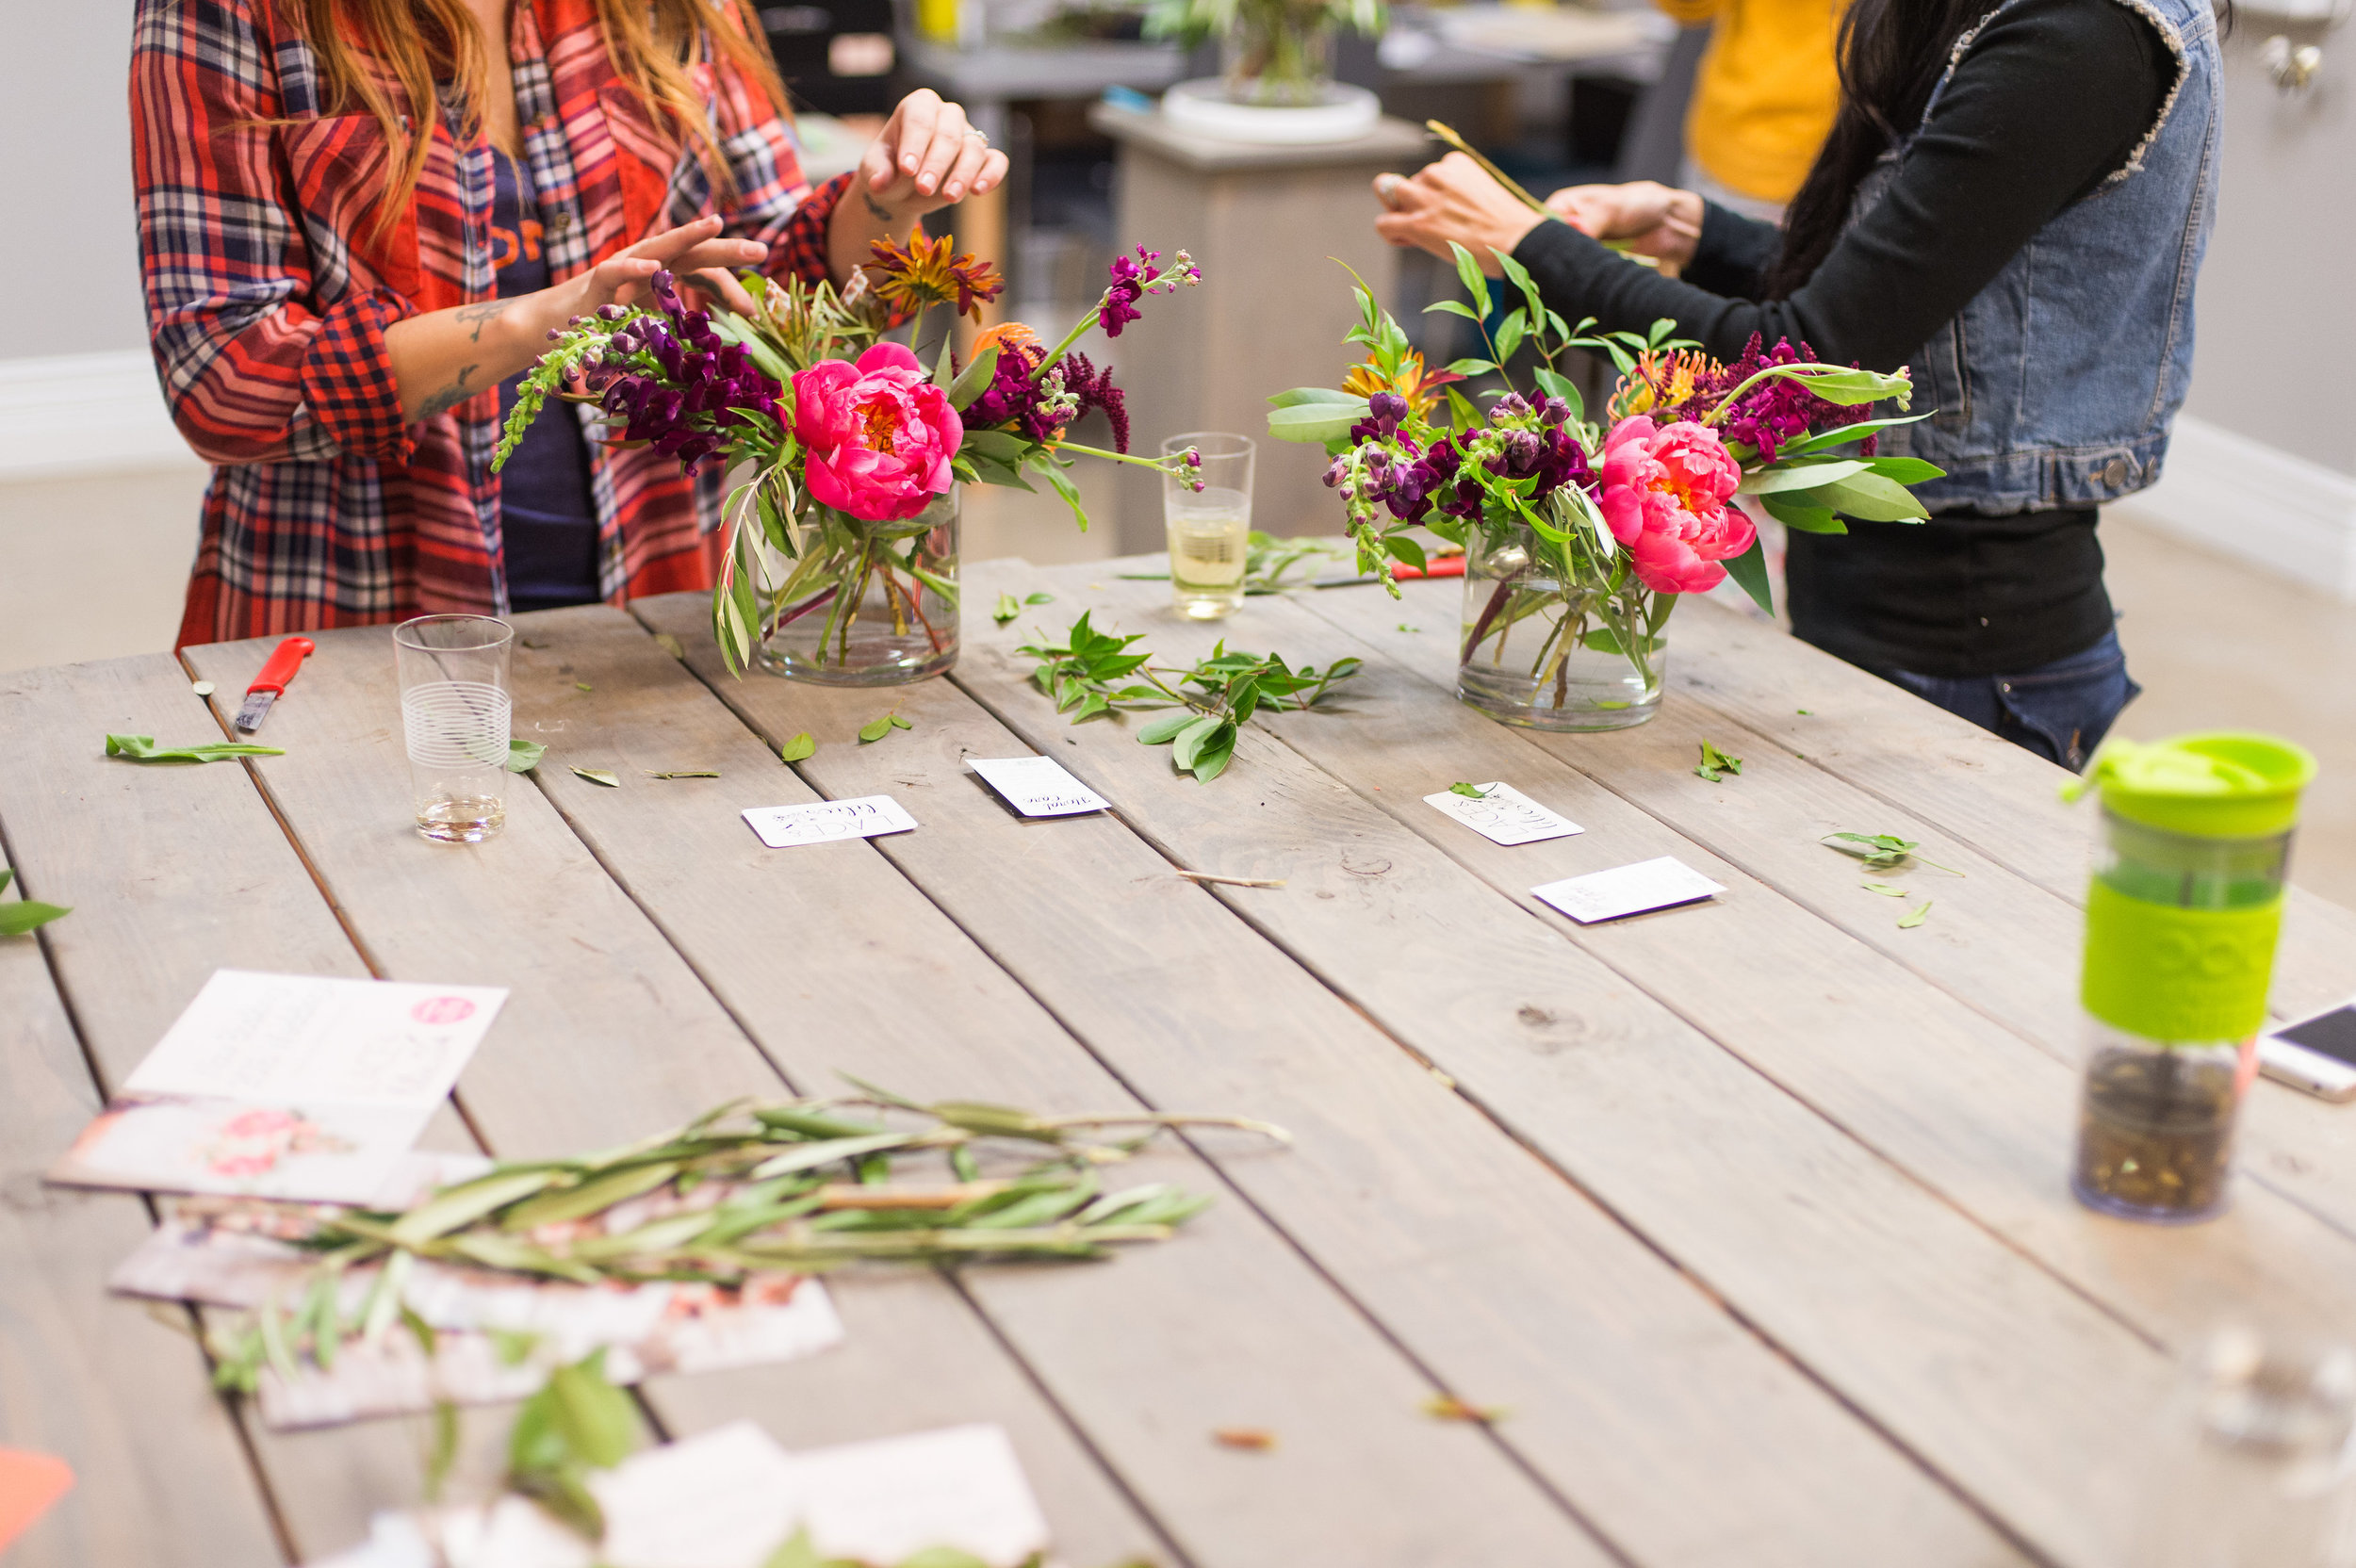 Lace and Lilies floral design workshop, Fort Collins Colorado fun